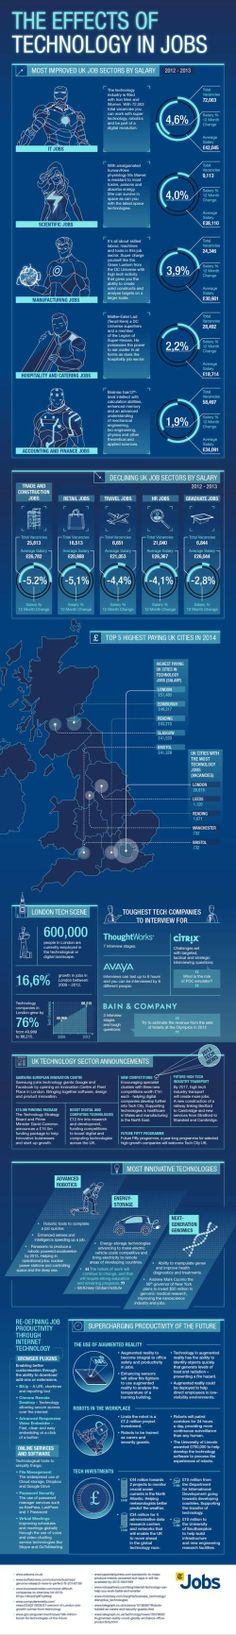 effects technology jobs infographic The Effects of Technology in Jobs [Infographic] [UK]